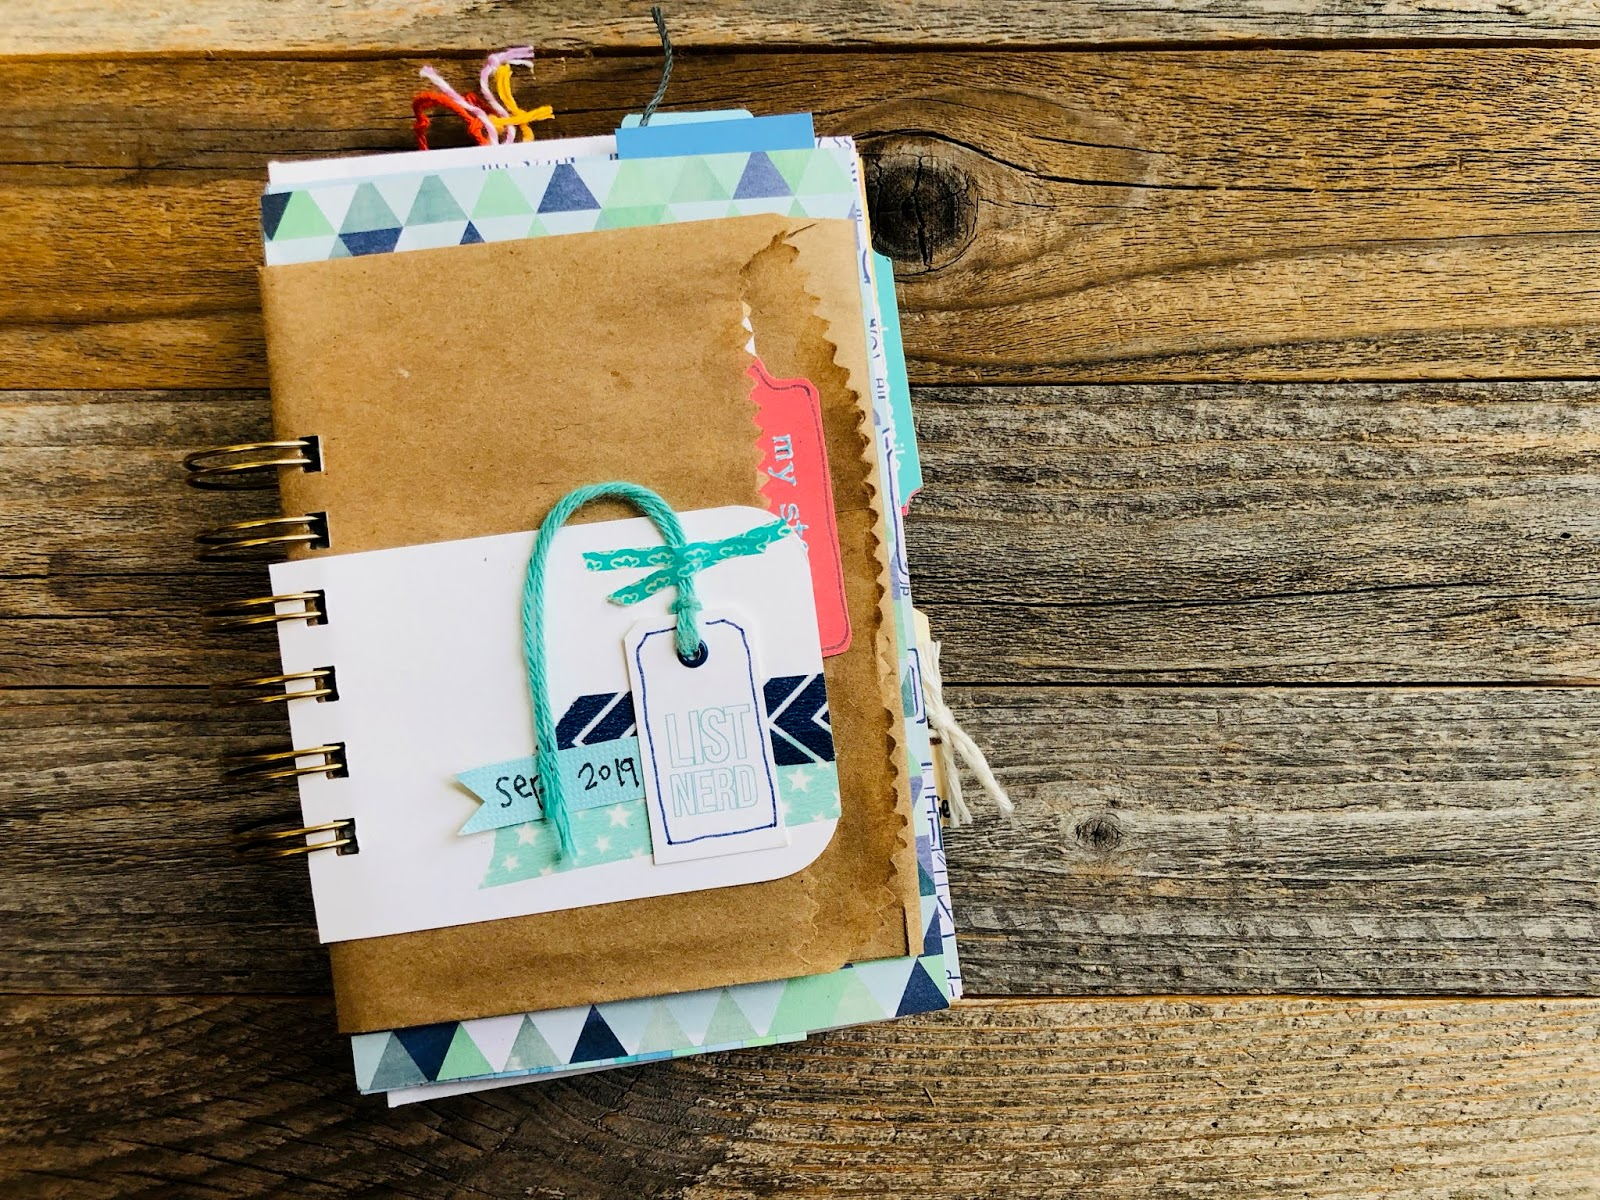 #30lists #30 days of lists #currently #right now #printable #junk journal #mini book